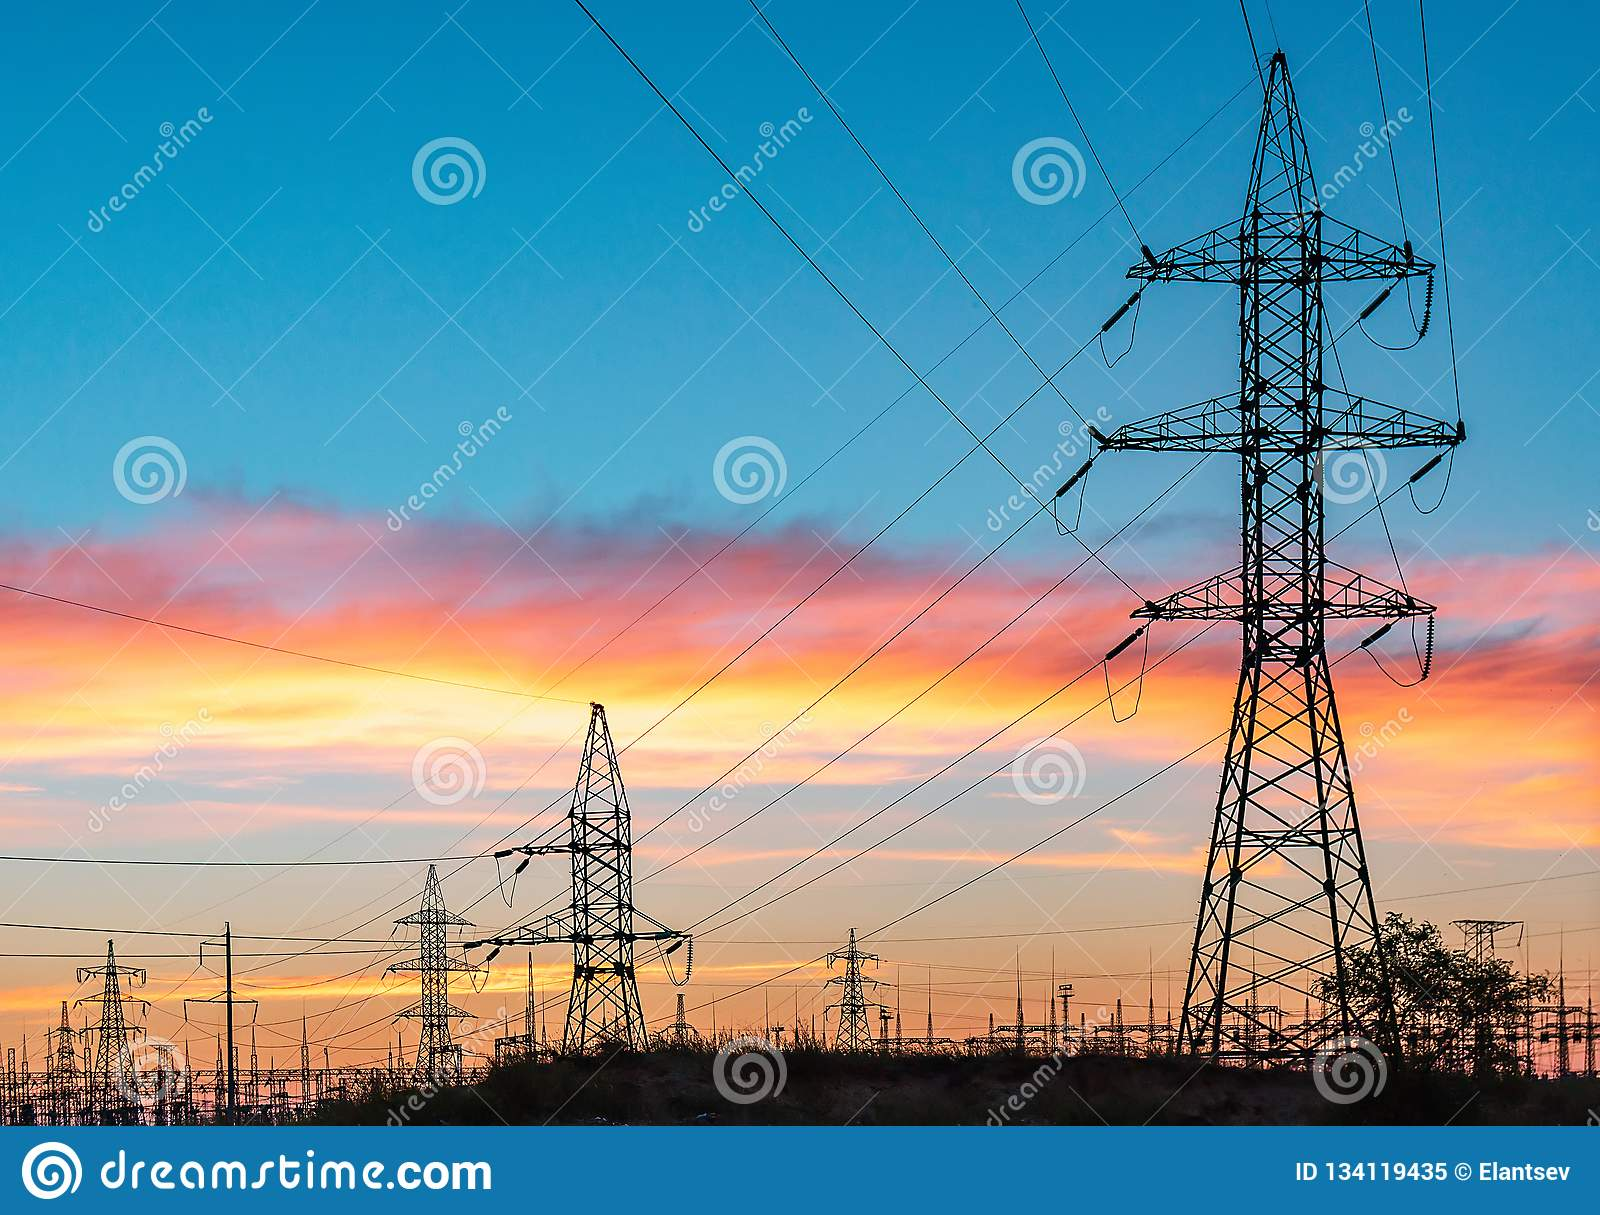 High-voltage power lines. Electricity distribution station. high voltage electric transmission tower. Distribution electric